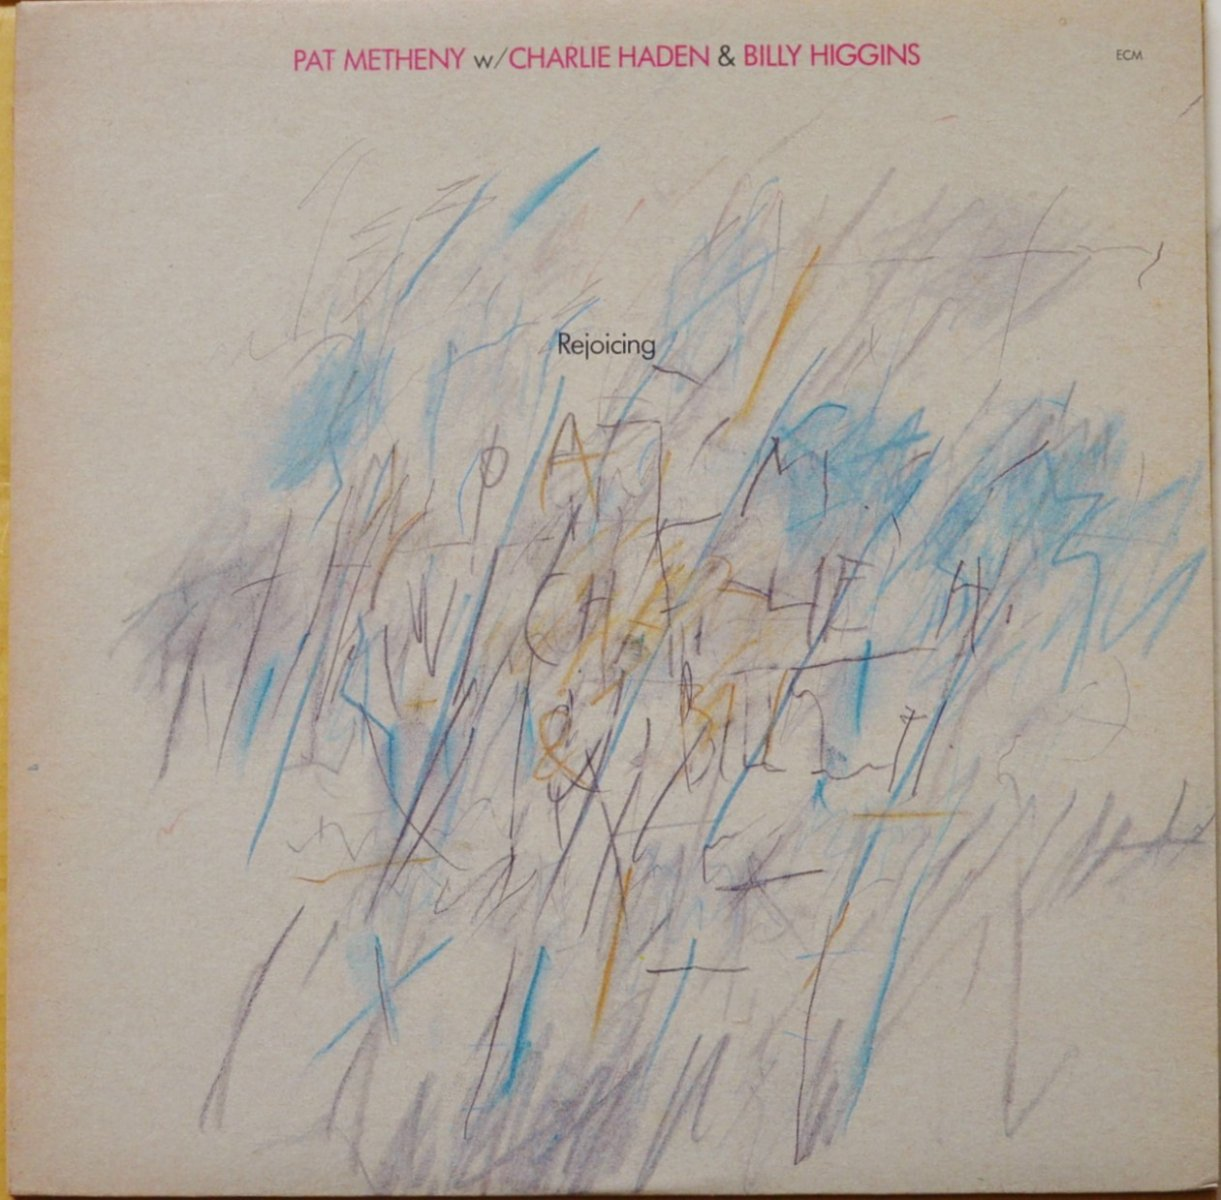 PAT METHENY W/ CHARLIE HADEN & BILLY HIGGINS ‎/ REJOICING (LP)